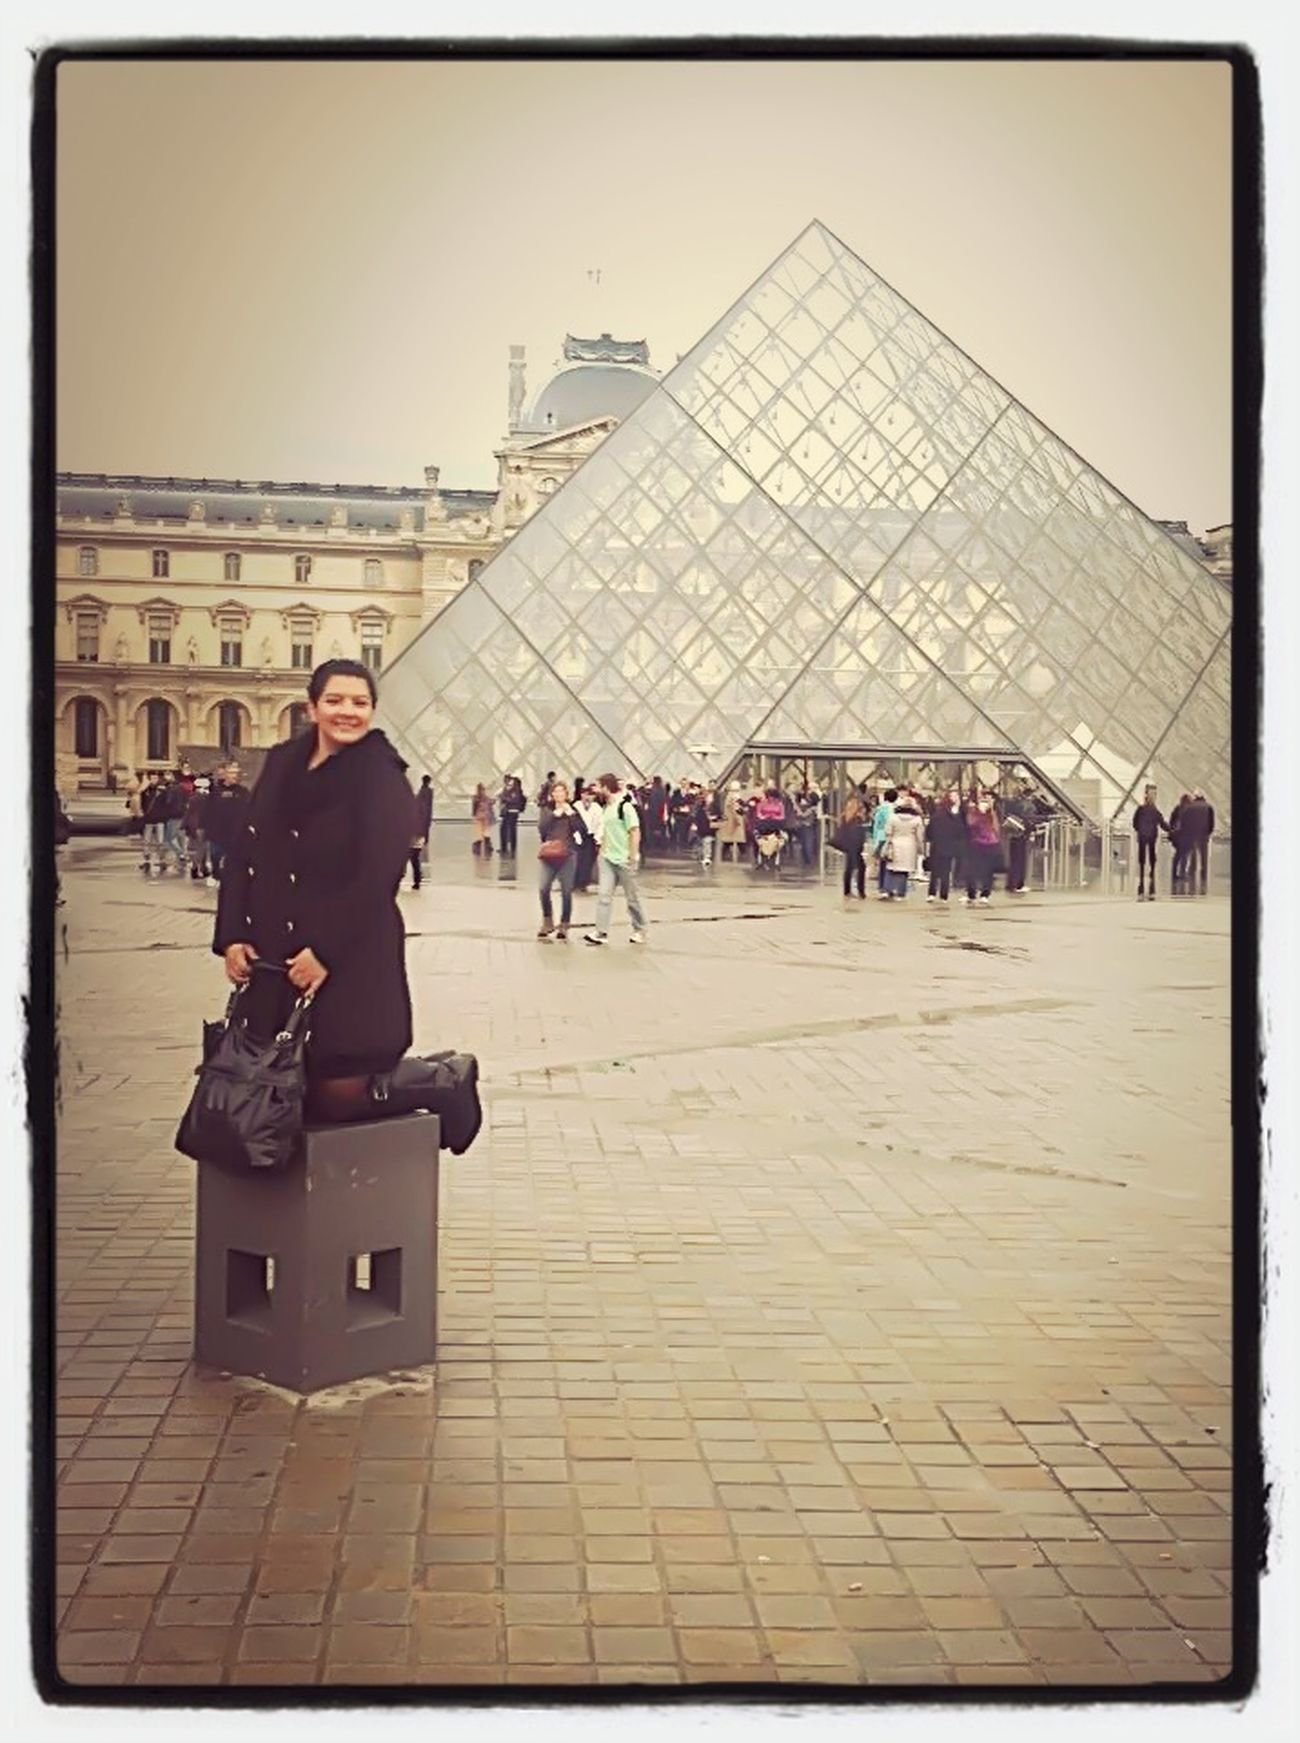 In Paris at the Lourve. #paris